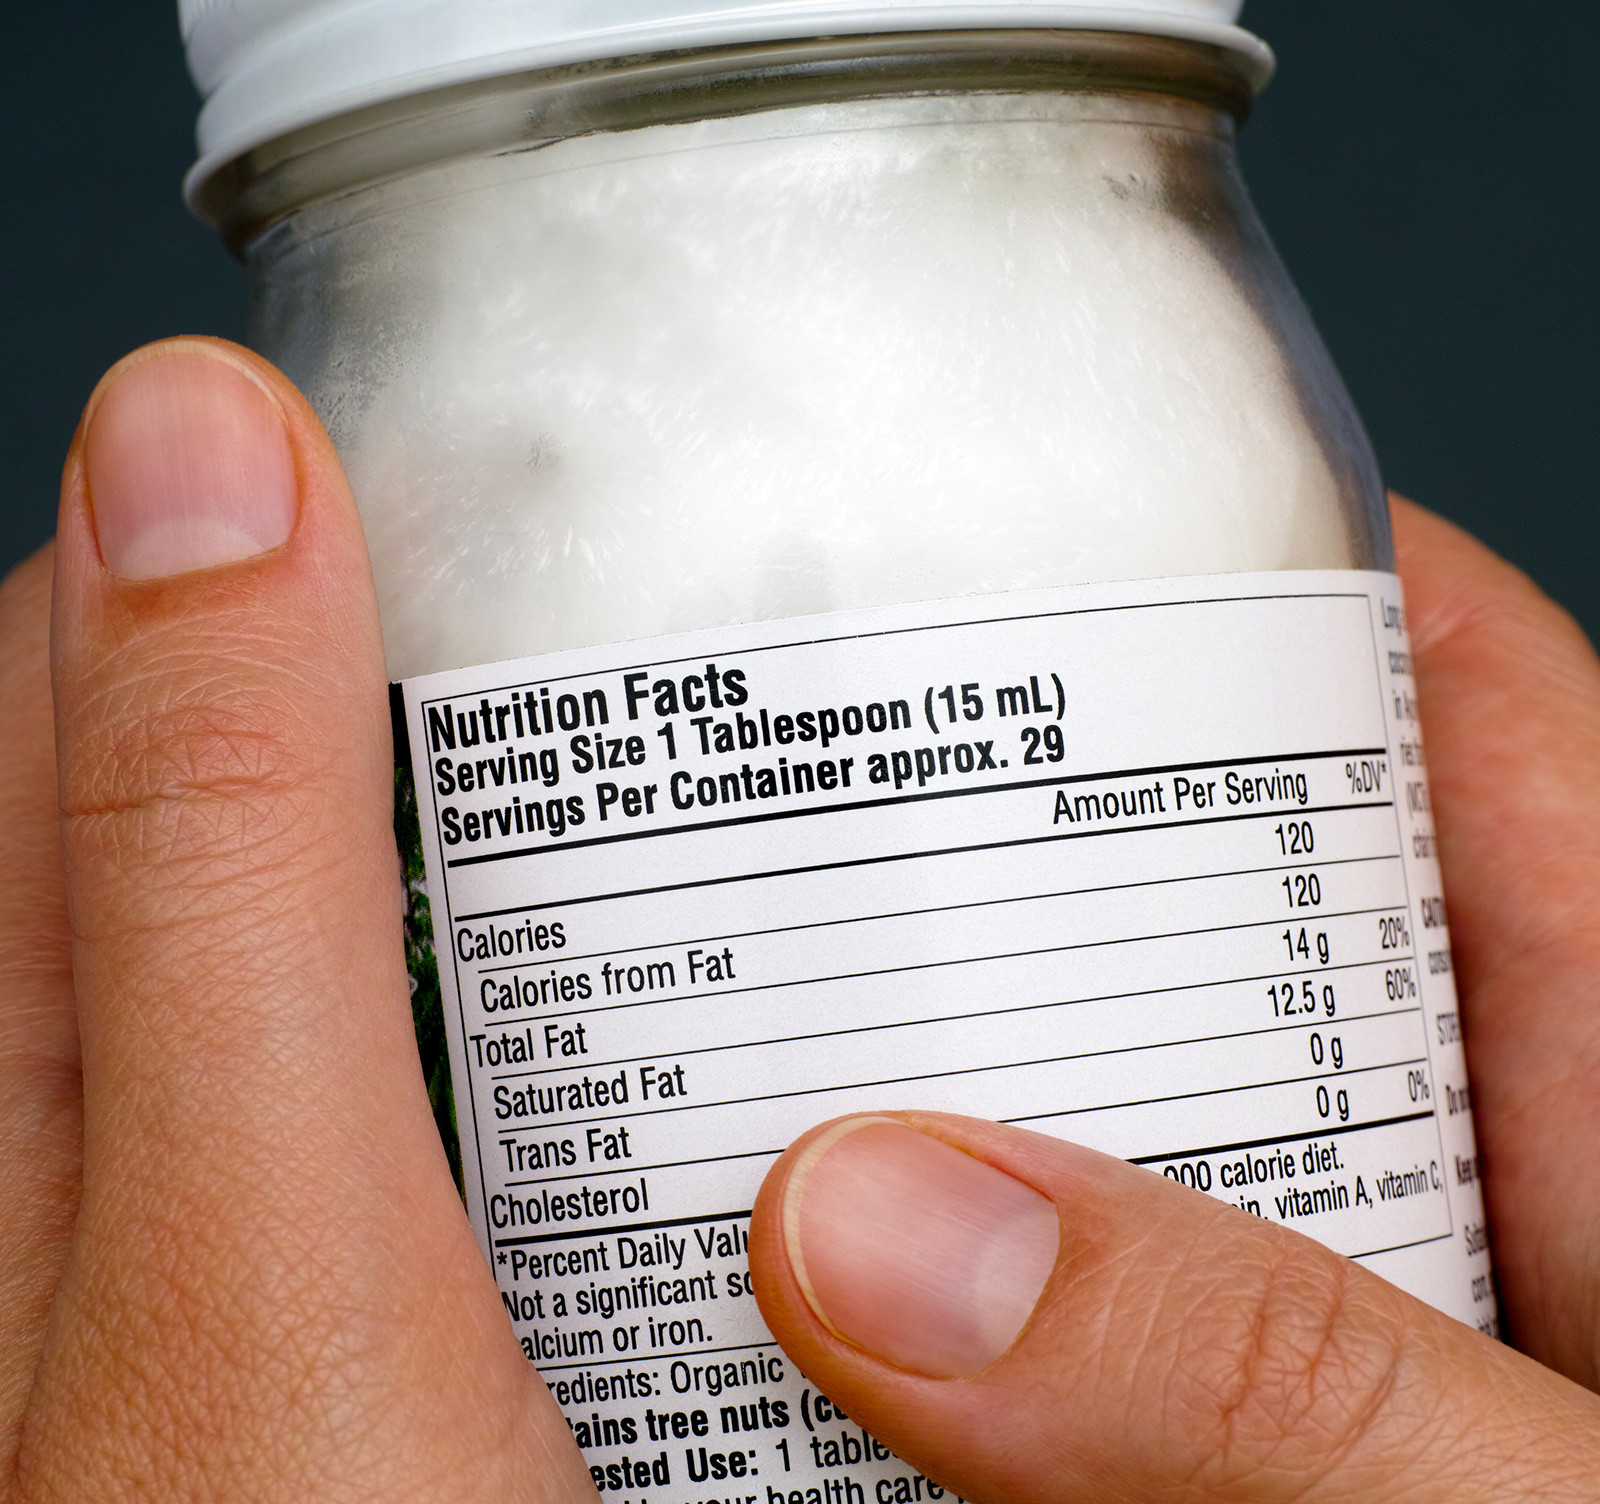 2 hands holding a coconut oil jar with the nutrition facts label on it.